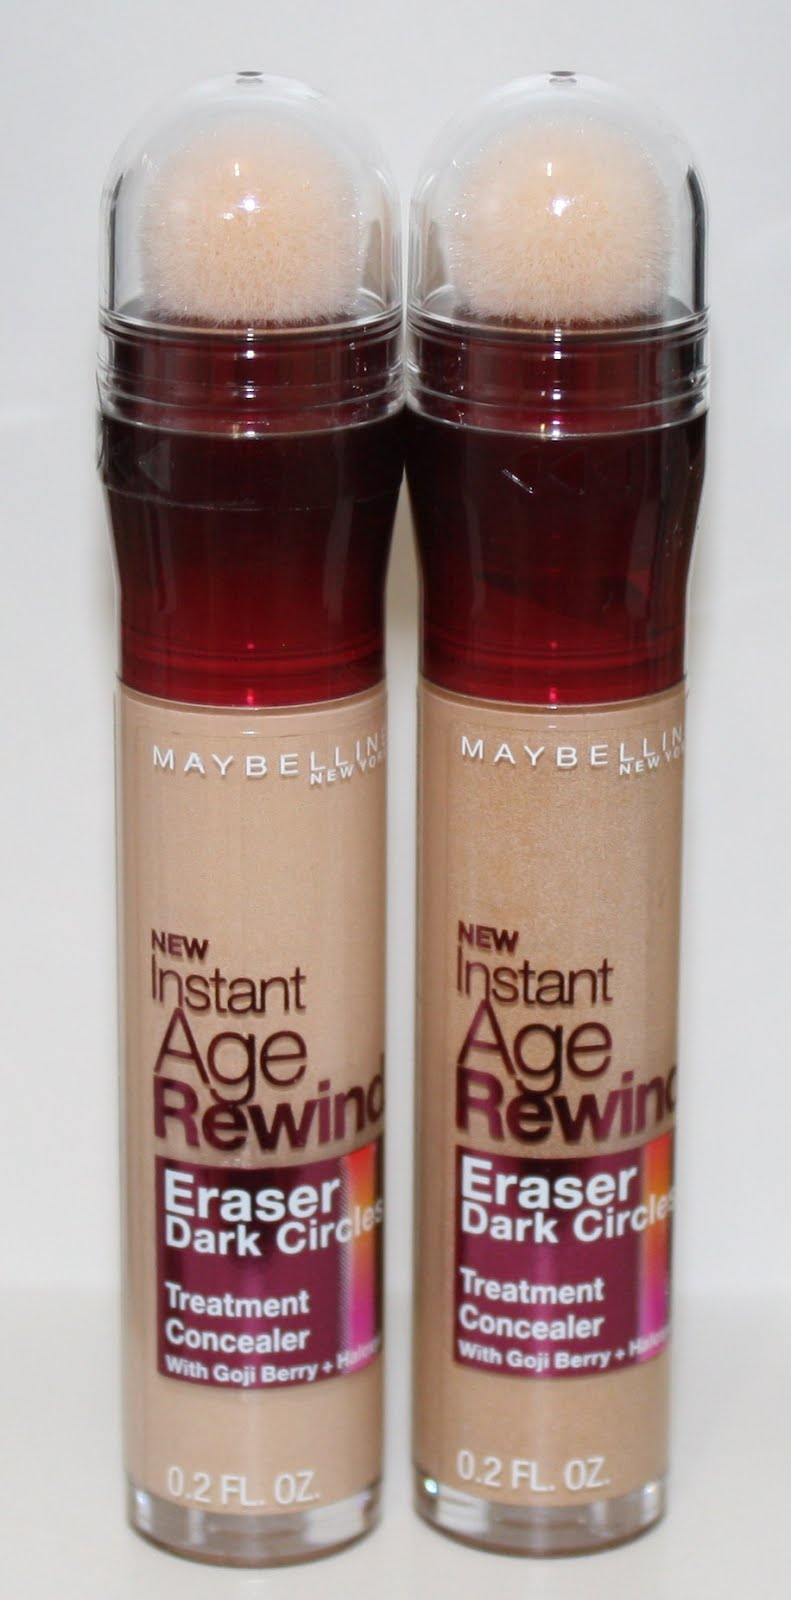 weakness of maybelline company Maybelline new york is the world's best-selling mass-market cosmetics brand   adbrands company profiles provide a detailed analysis of the history and  and  include a critical summary which identifies key strengths and weaknesses.